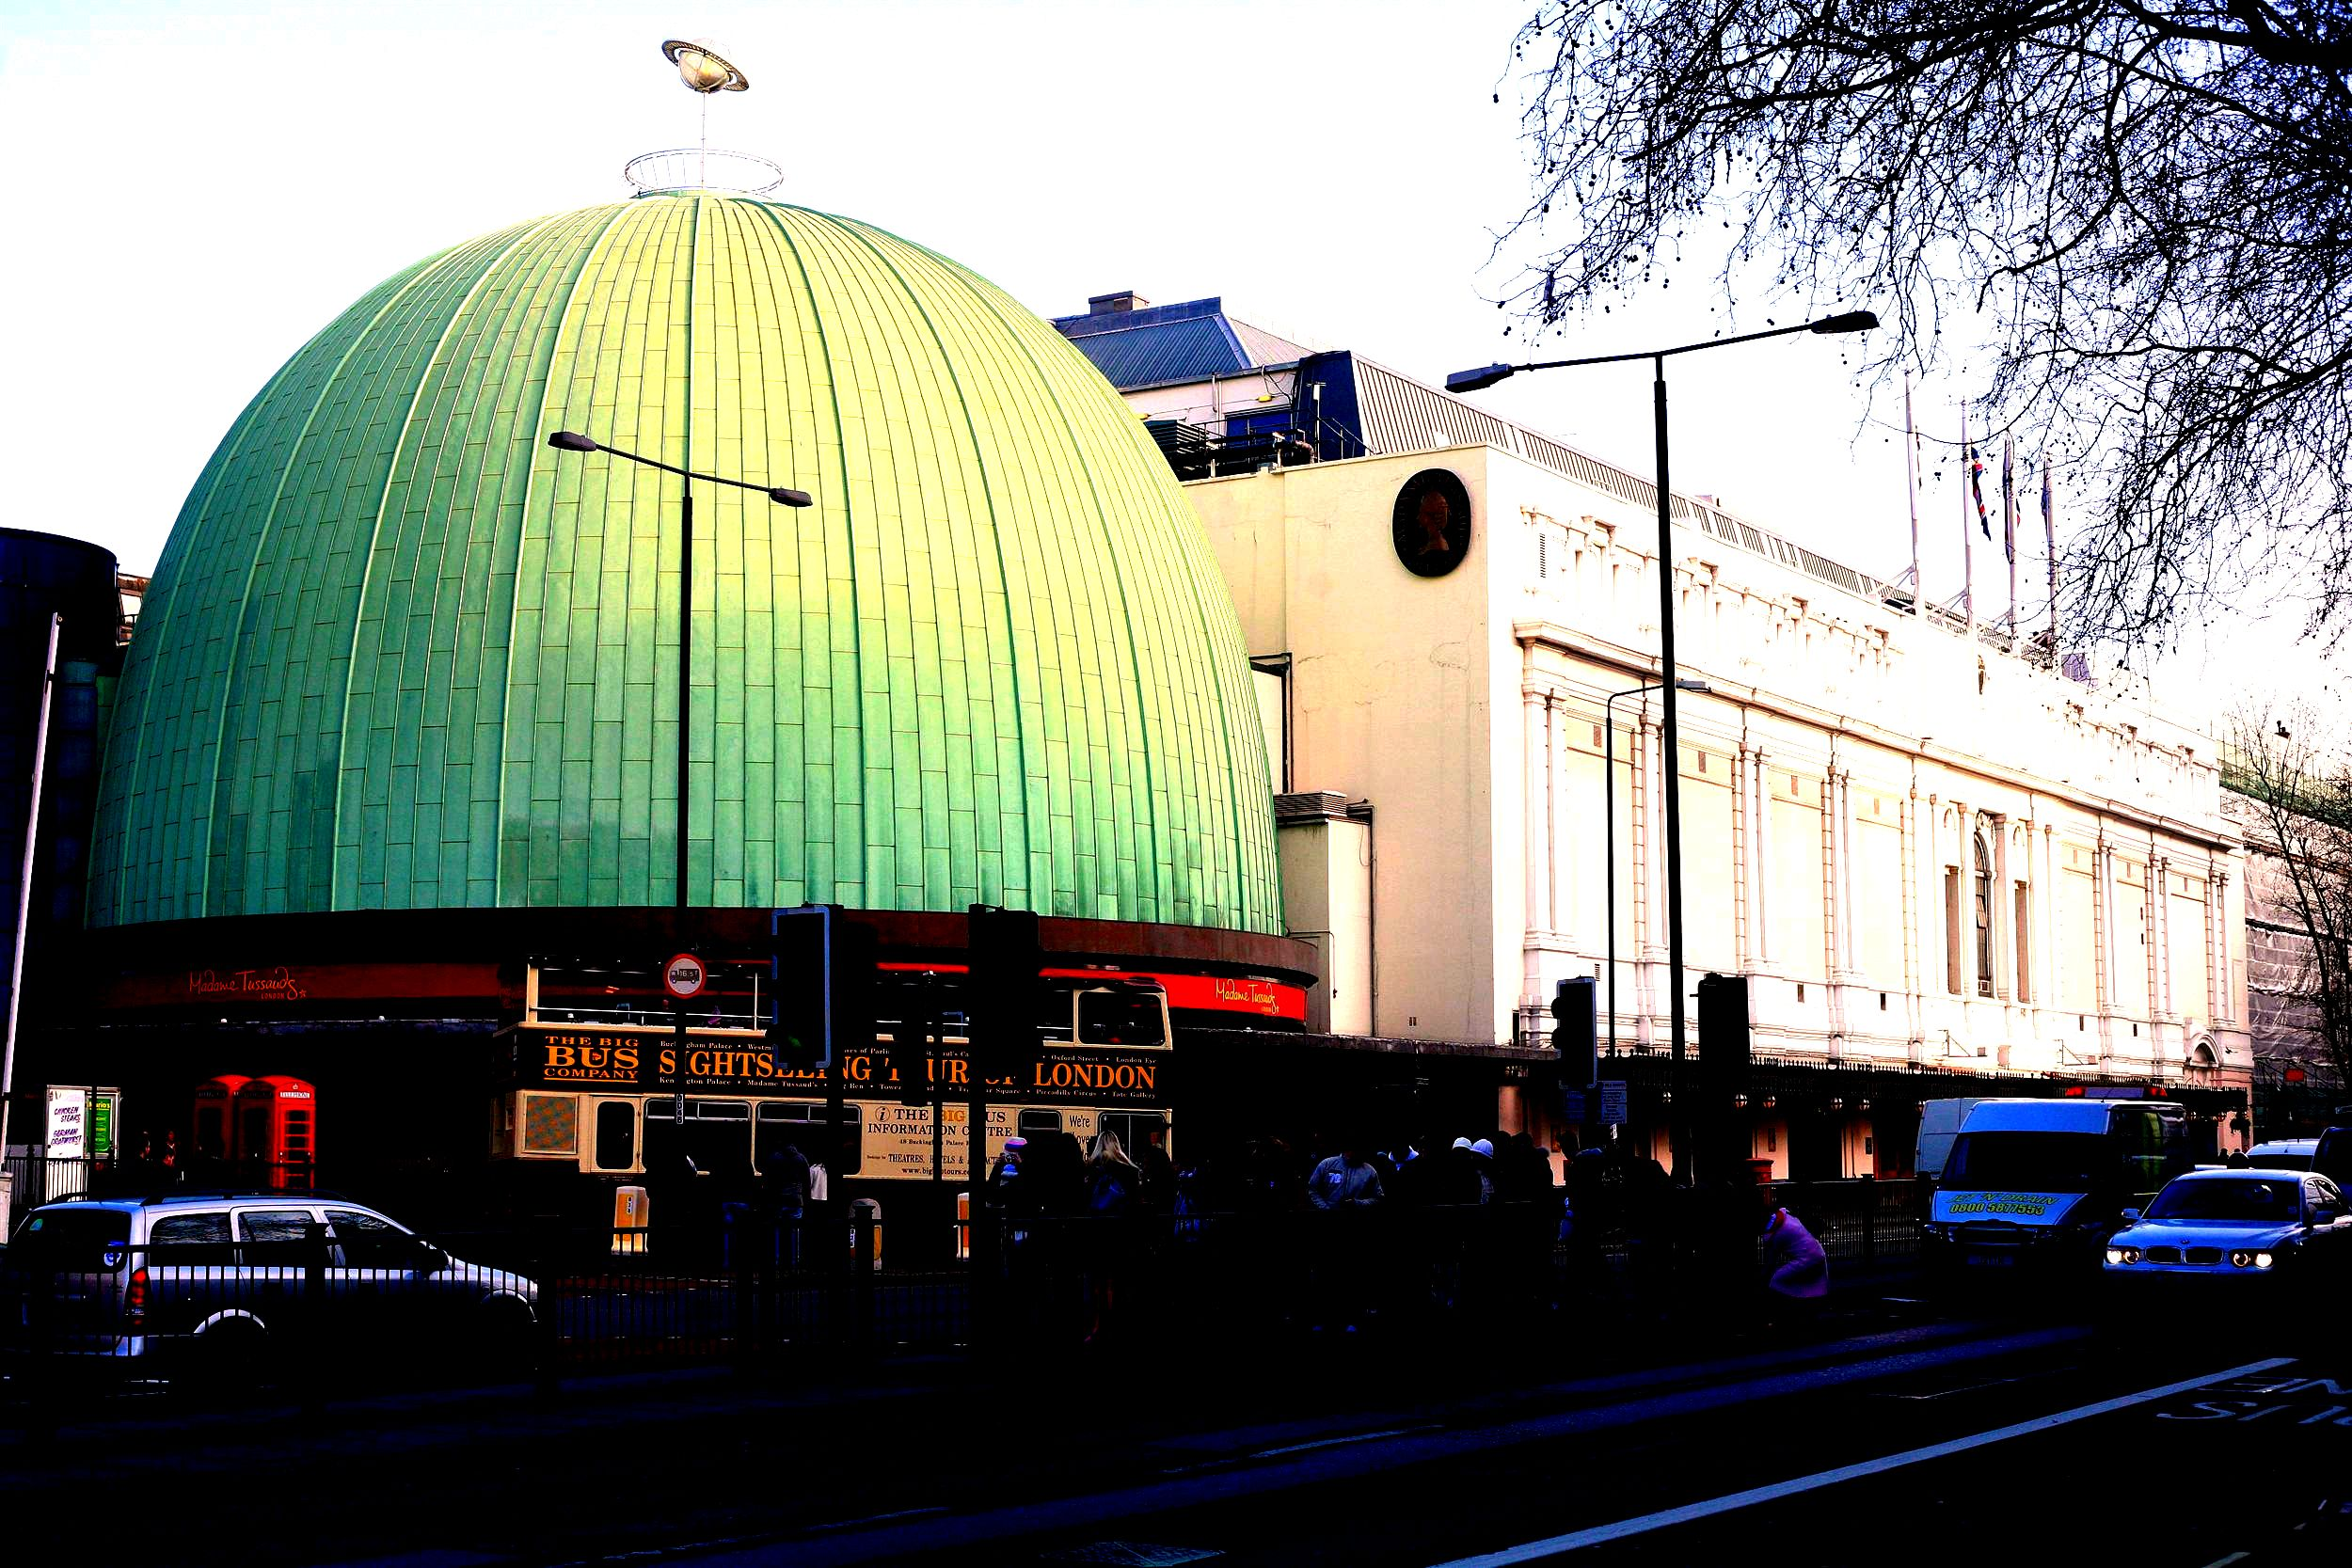 Madame tussauds london location on